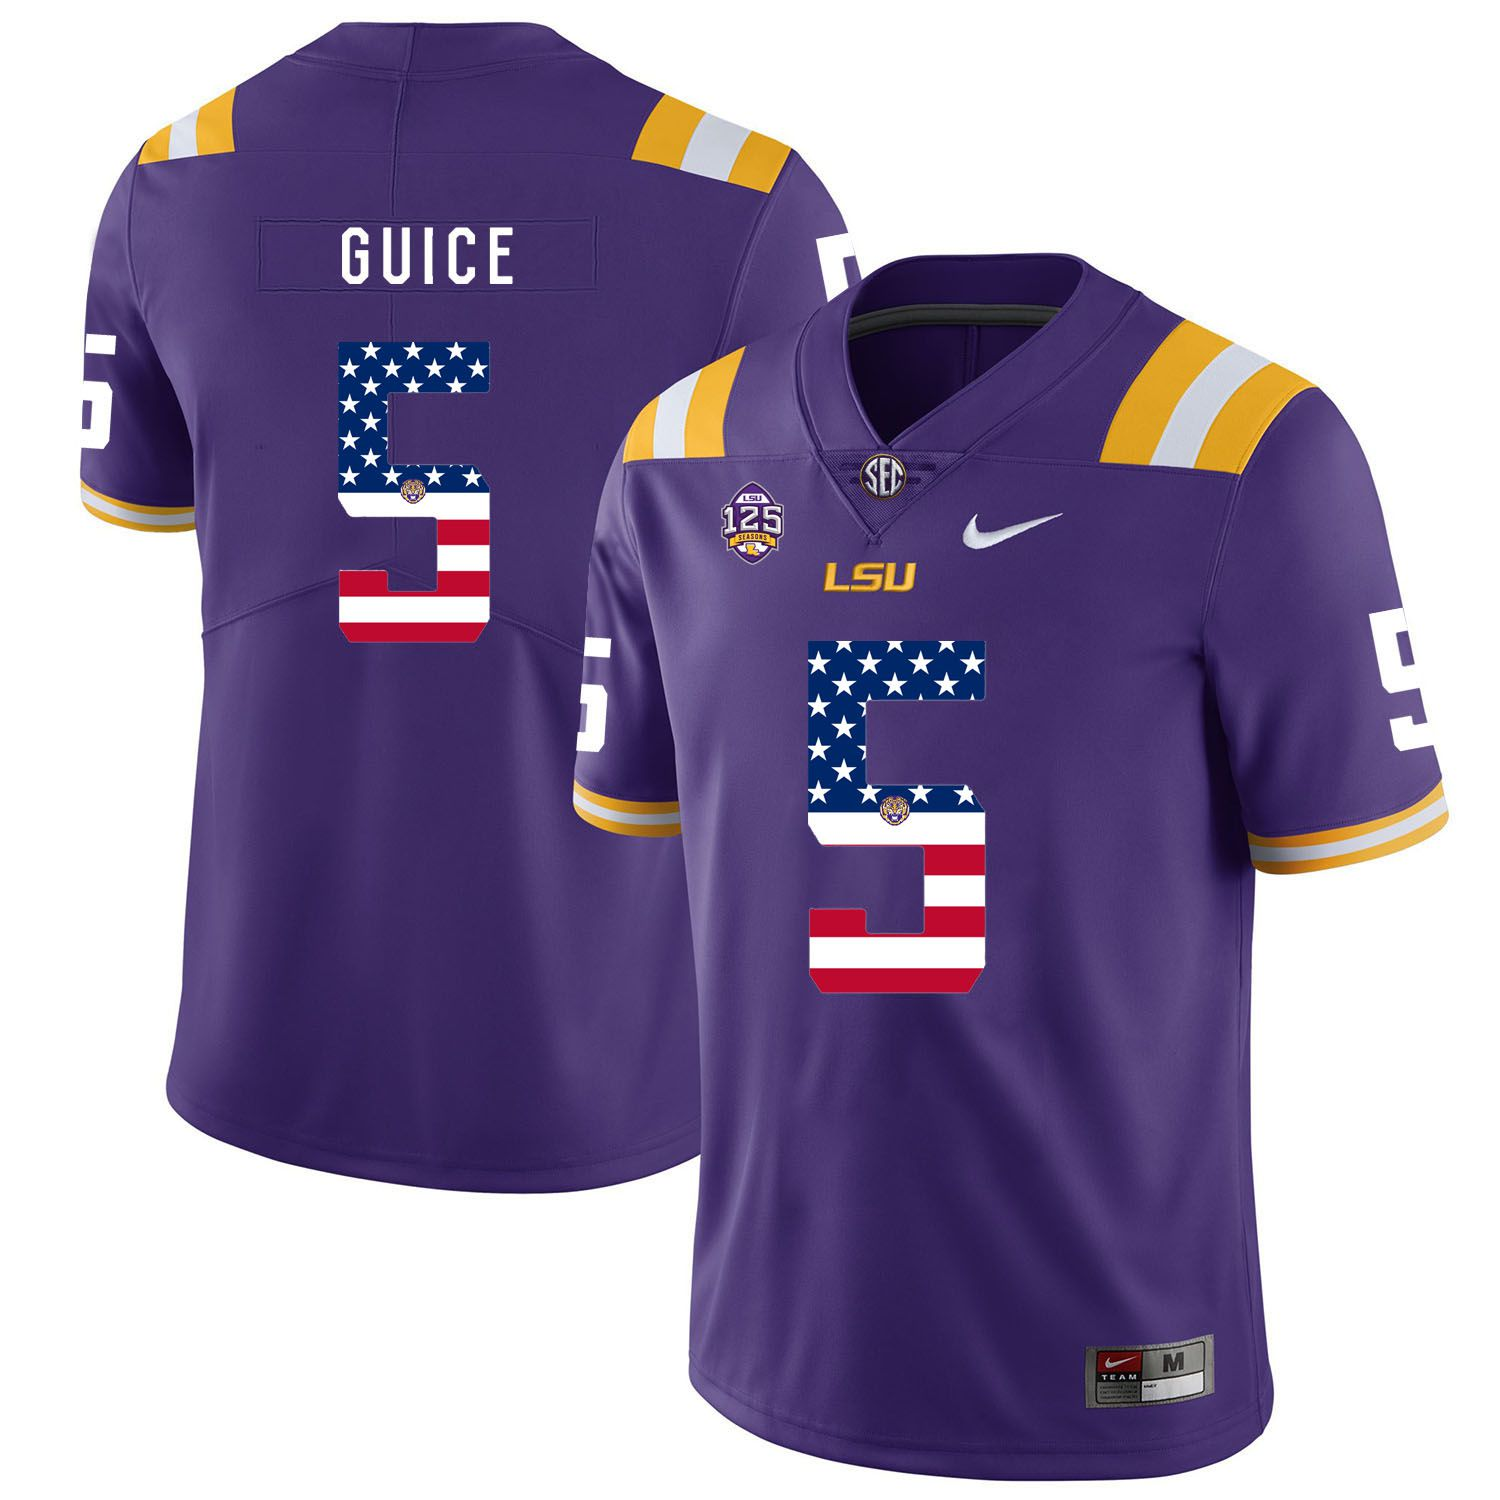 Men LSU Tigers 5 Guice Purple Flag Customized NCAA Jerseys